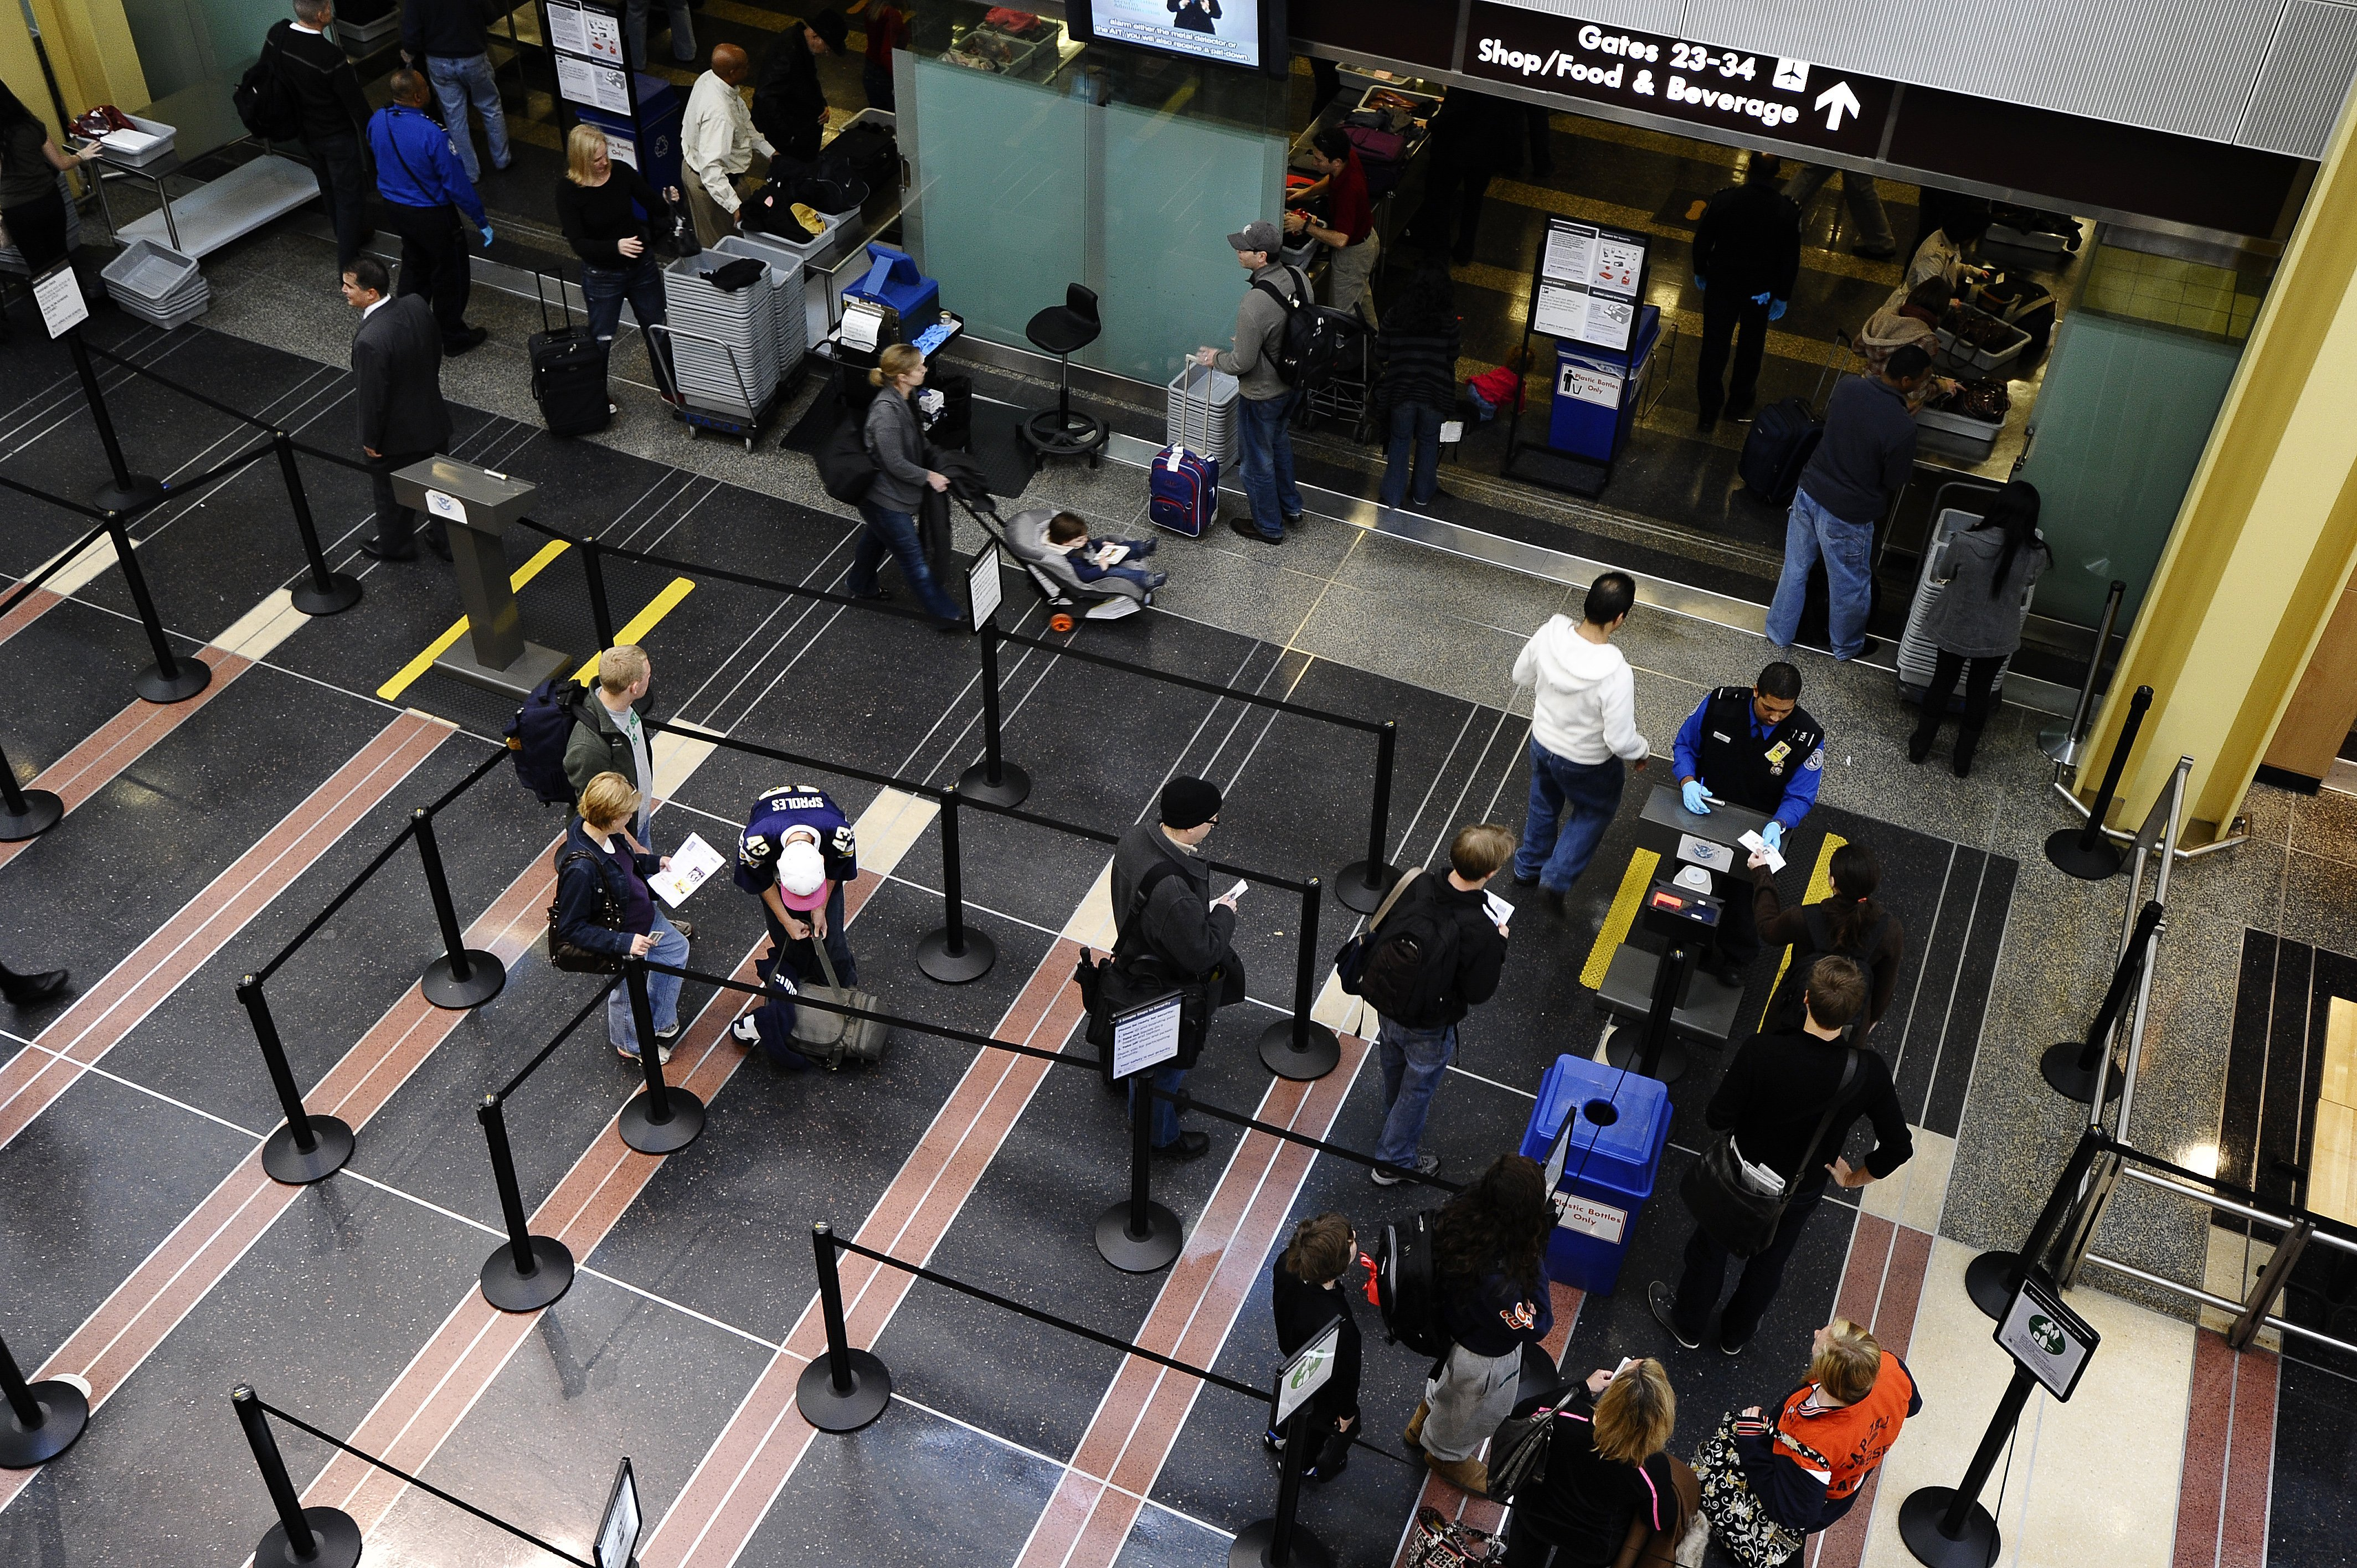 Unlikely everyone will have a REAL ID by October deadline, acting Homeland Security secretary says